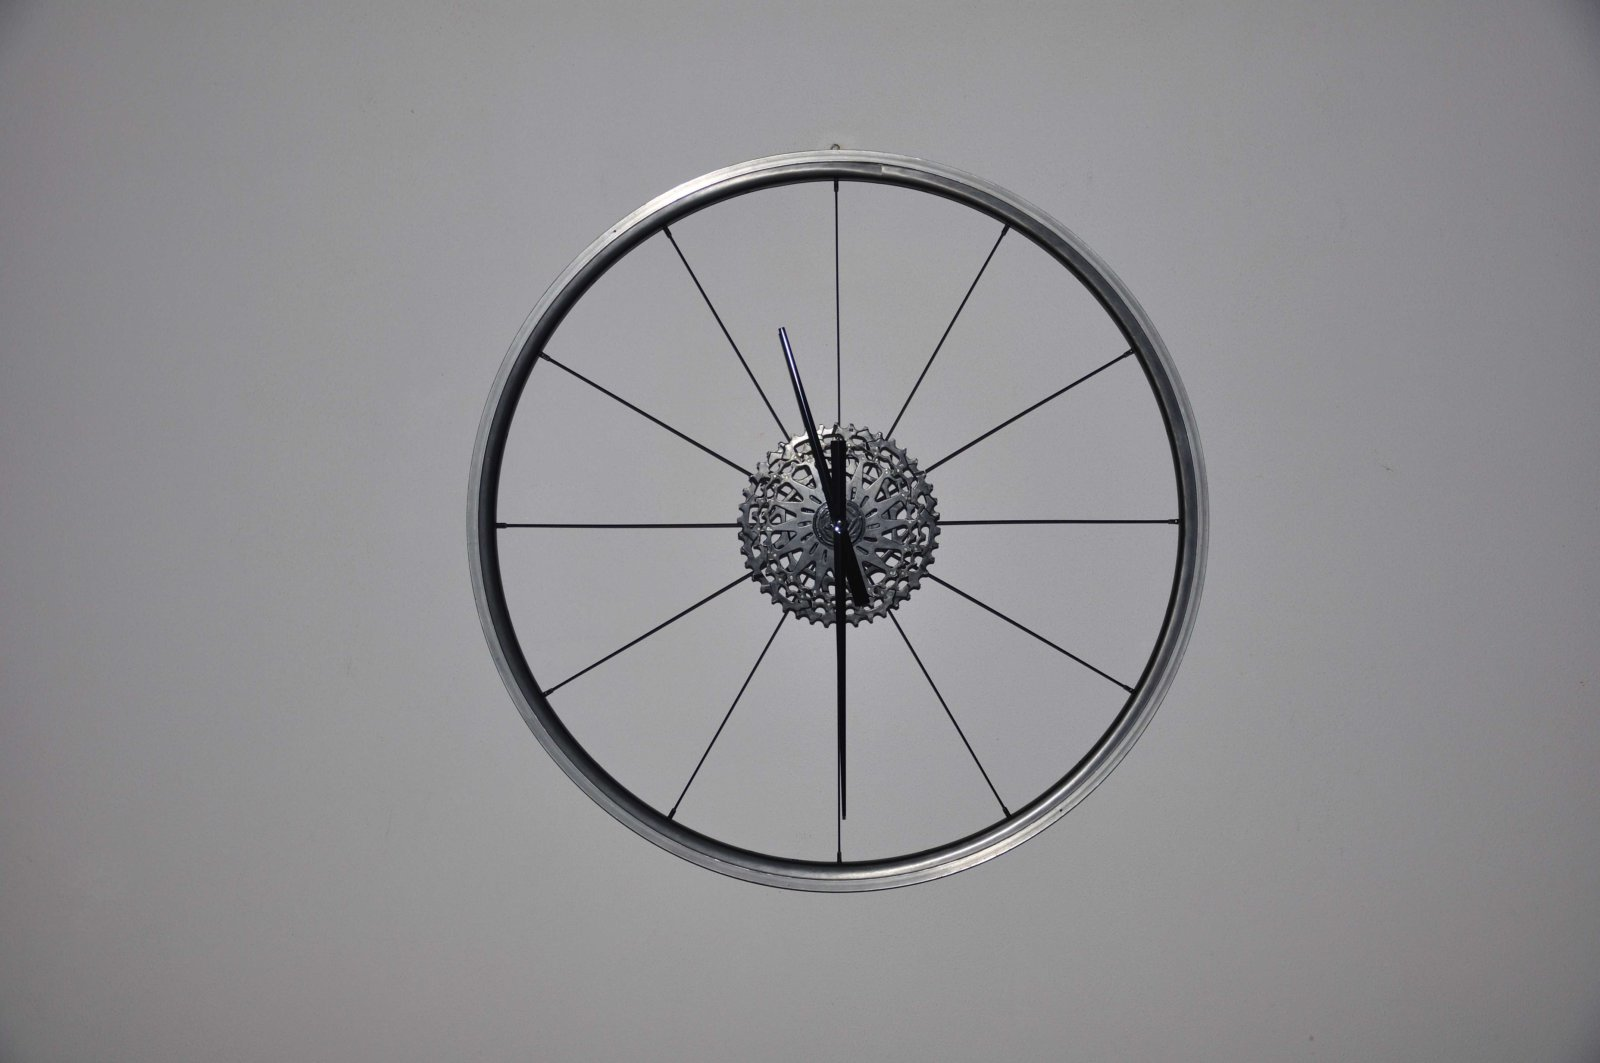 Fietsklok Cycling Clock All Black Created By Decreatievelink Hubert Van Soest